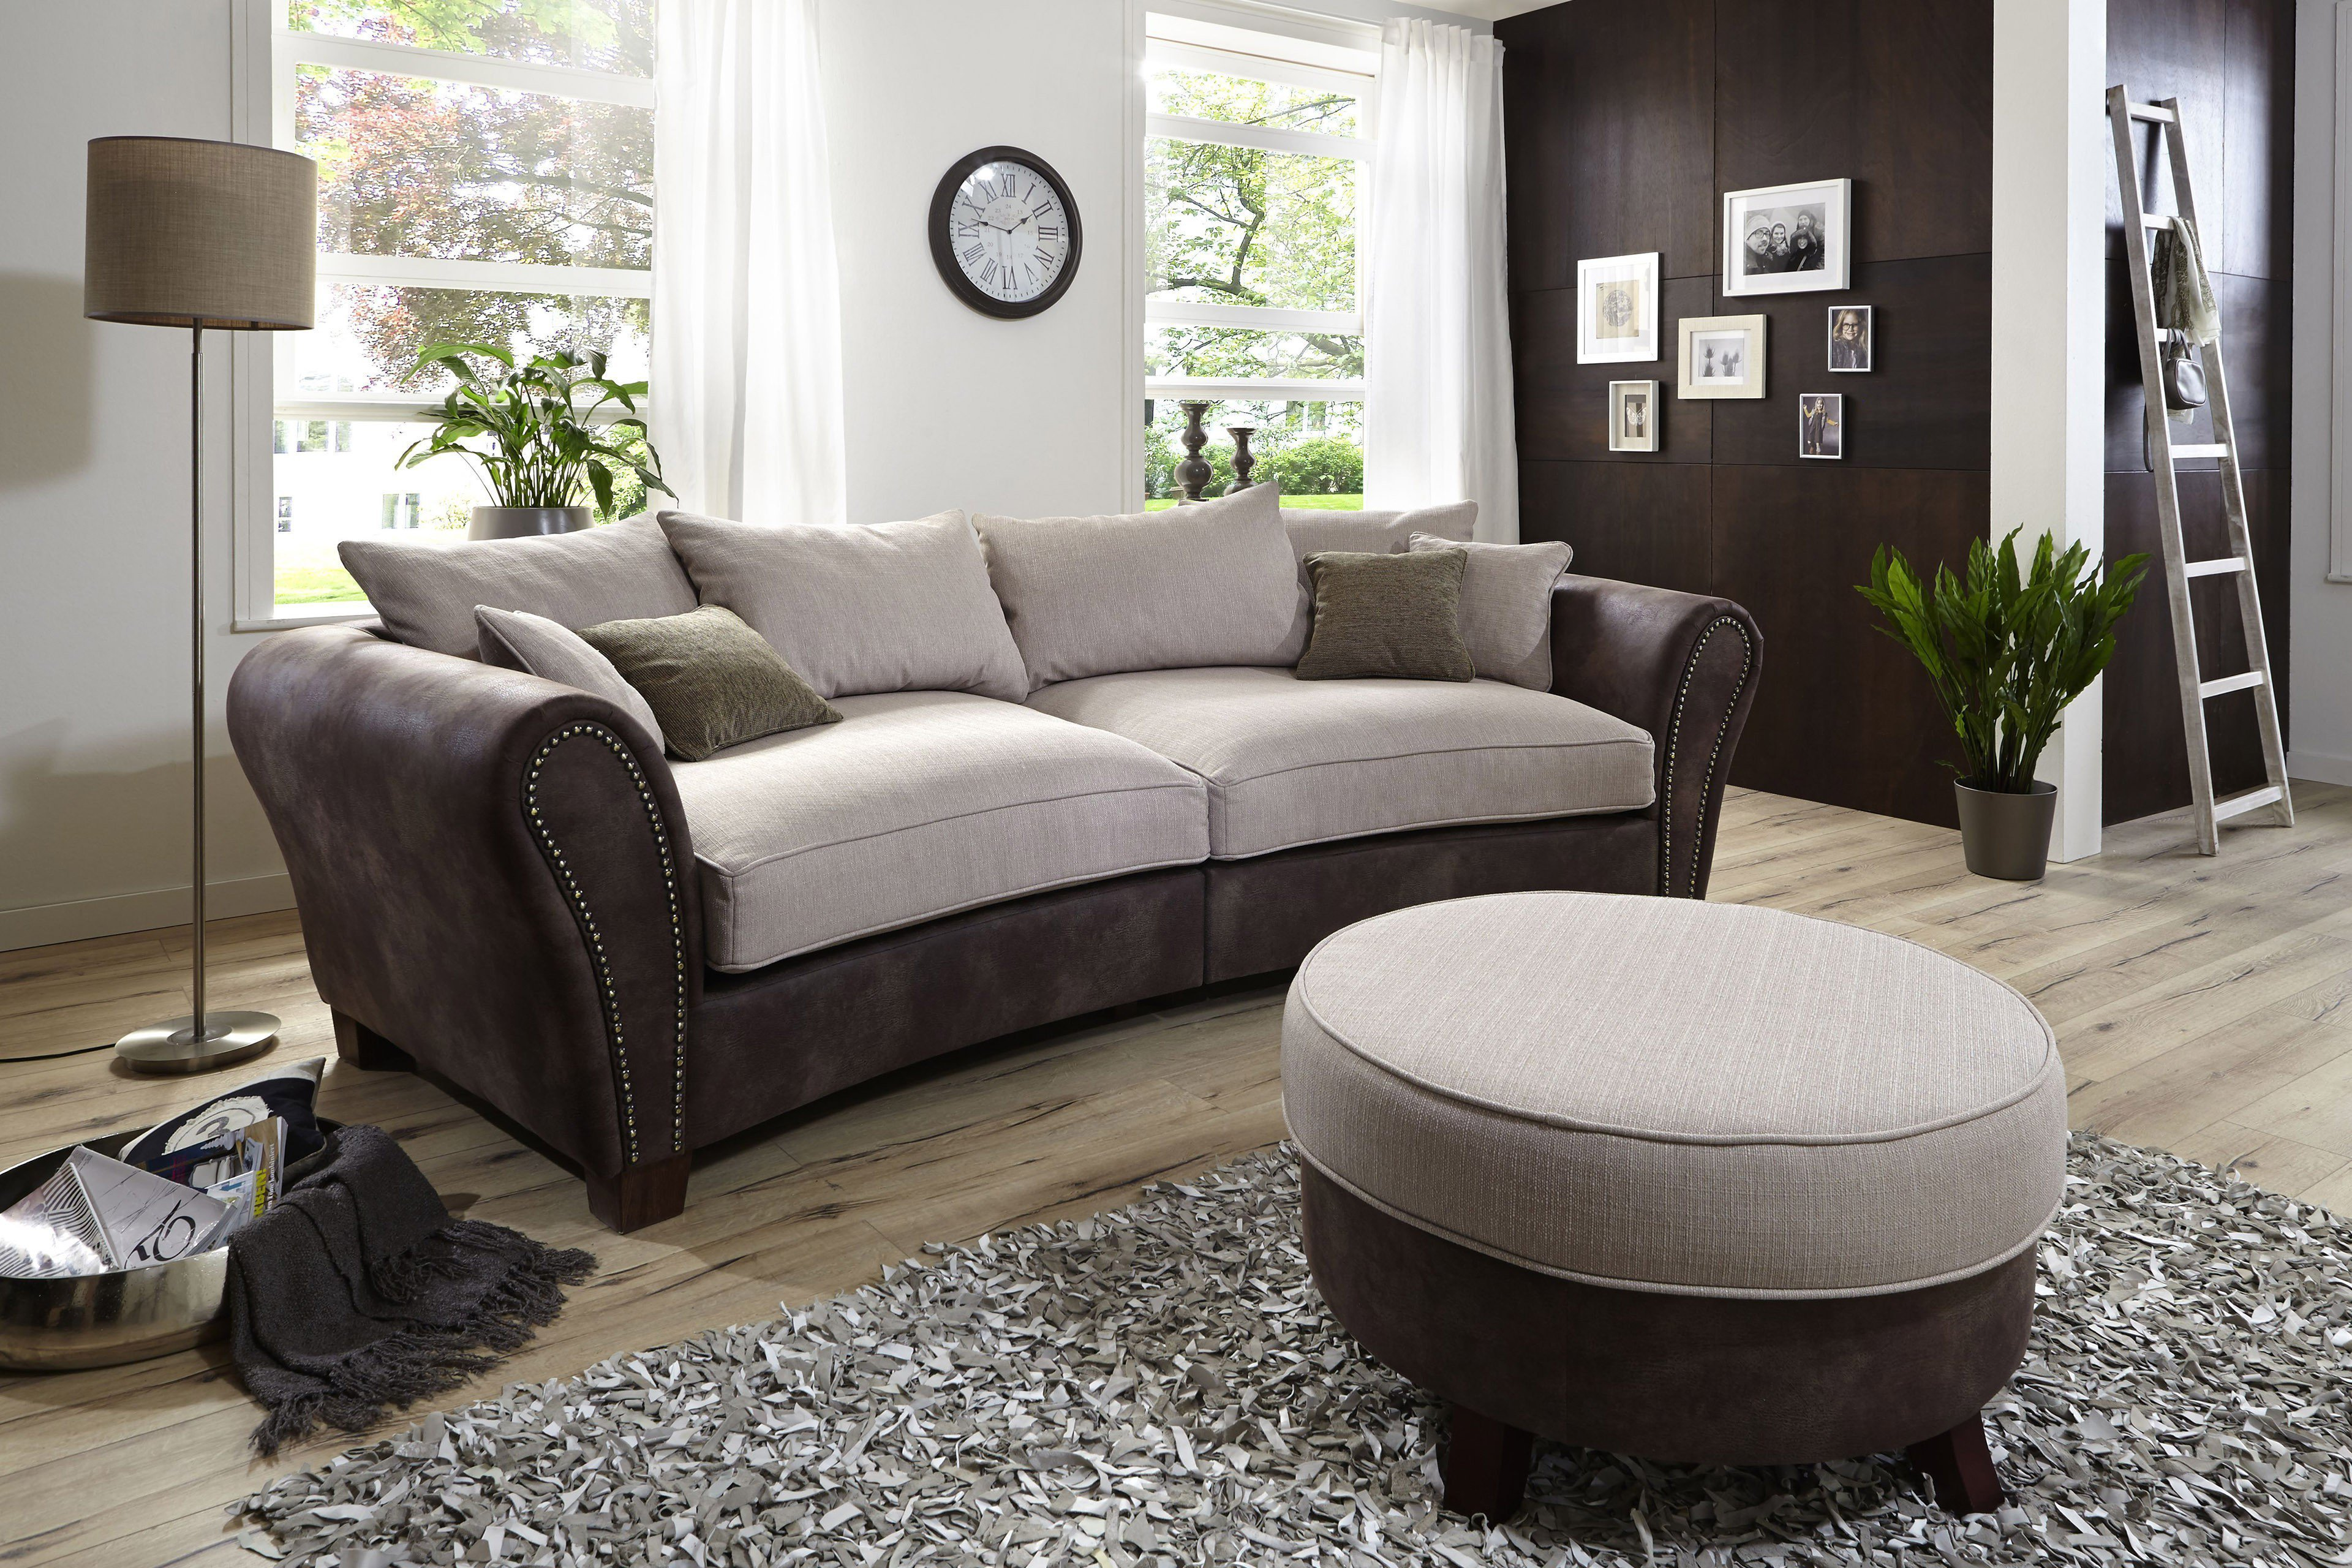 reality hudson megasofa braun beige m bel letz ihr. Black Bedroom Furniture Sets. Home Design Ideas